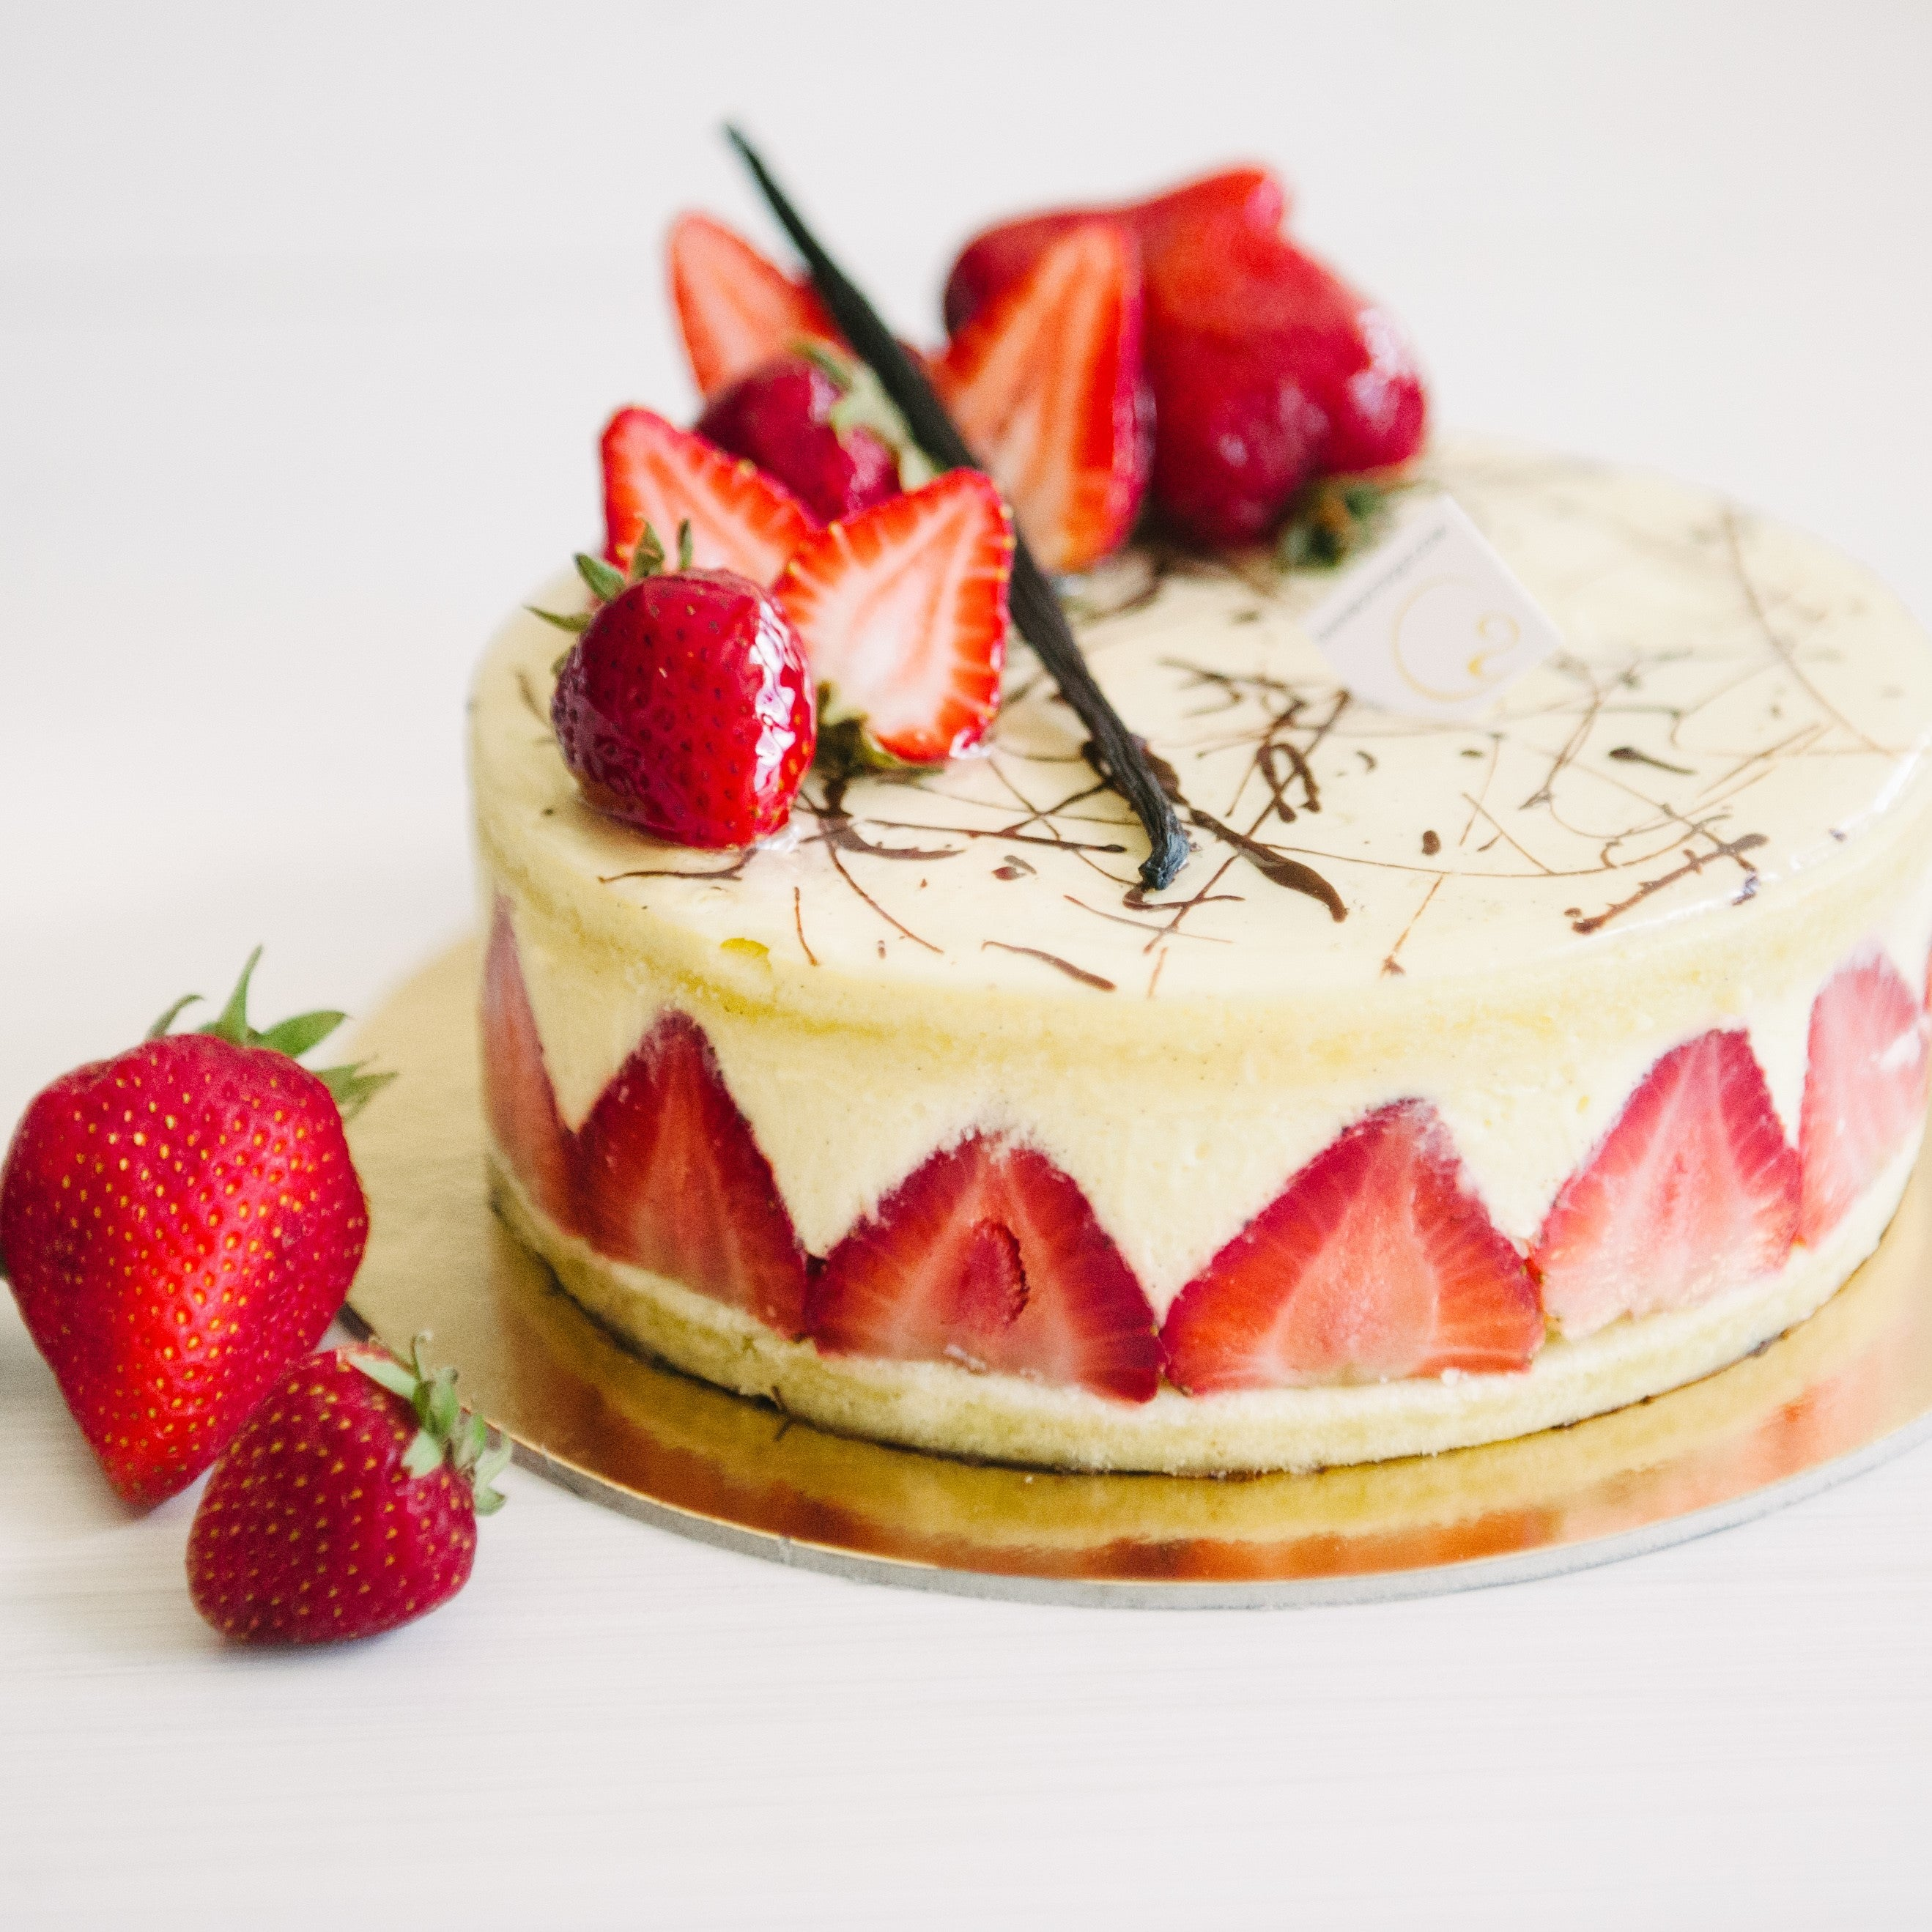 Fraisier cake for July is the best of strawberries and vanilla, best choice of Calgary!